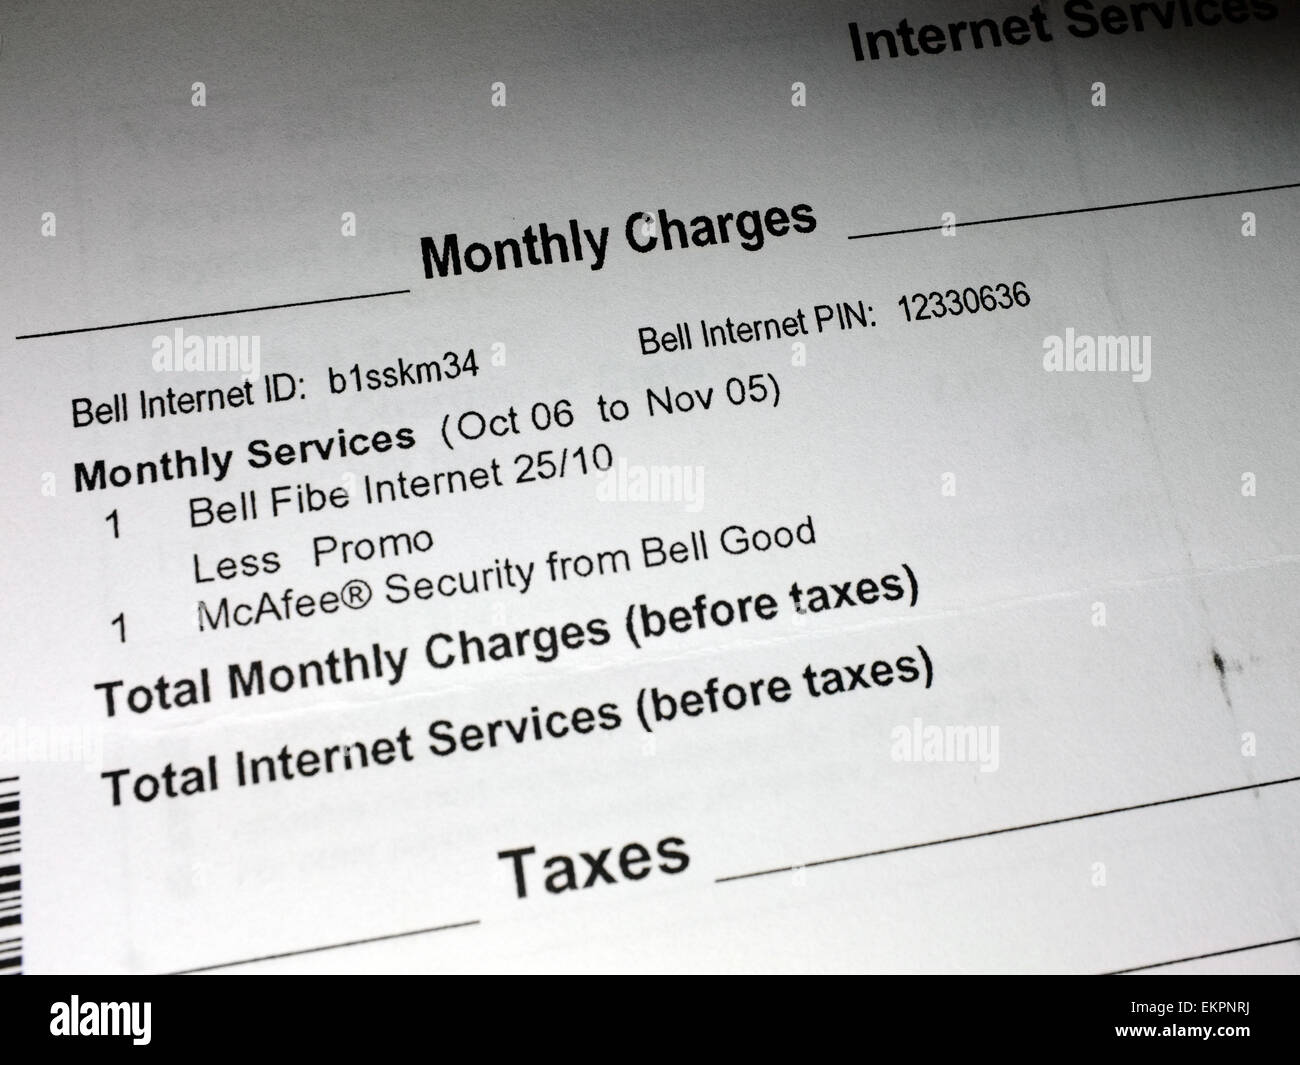 Paperwork with monthly charges on it. - Stock Image